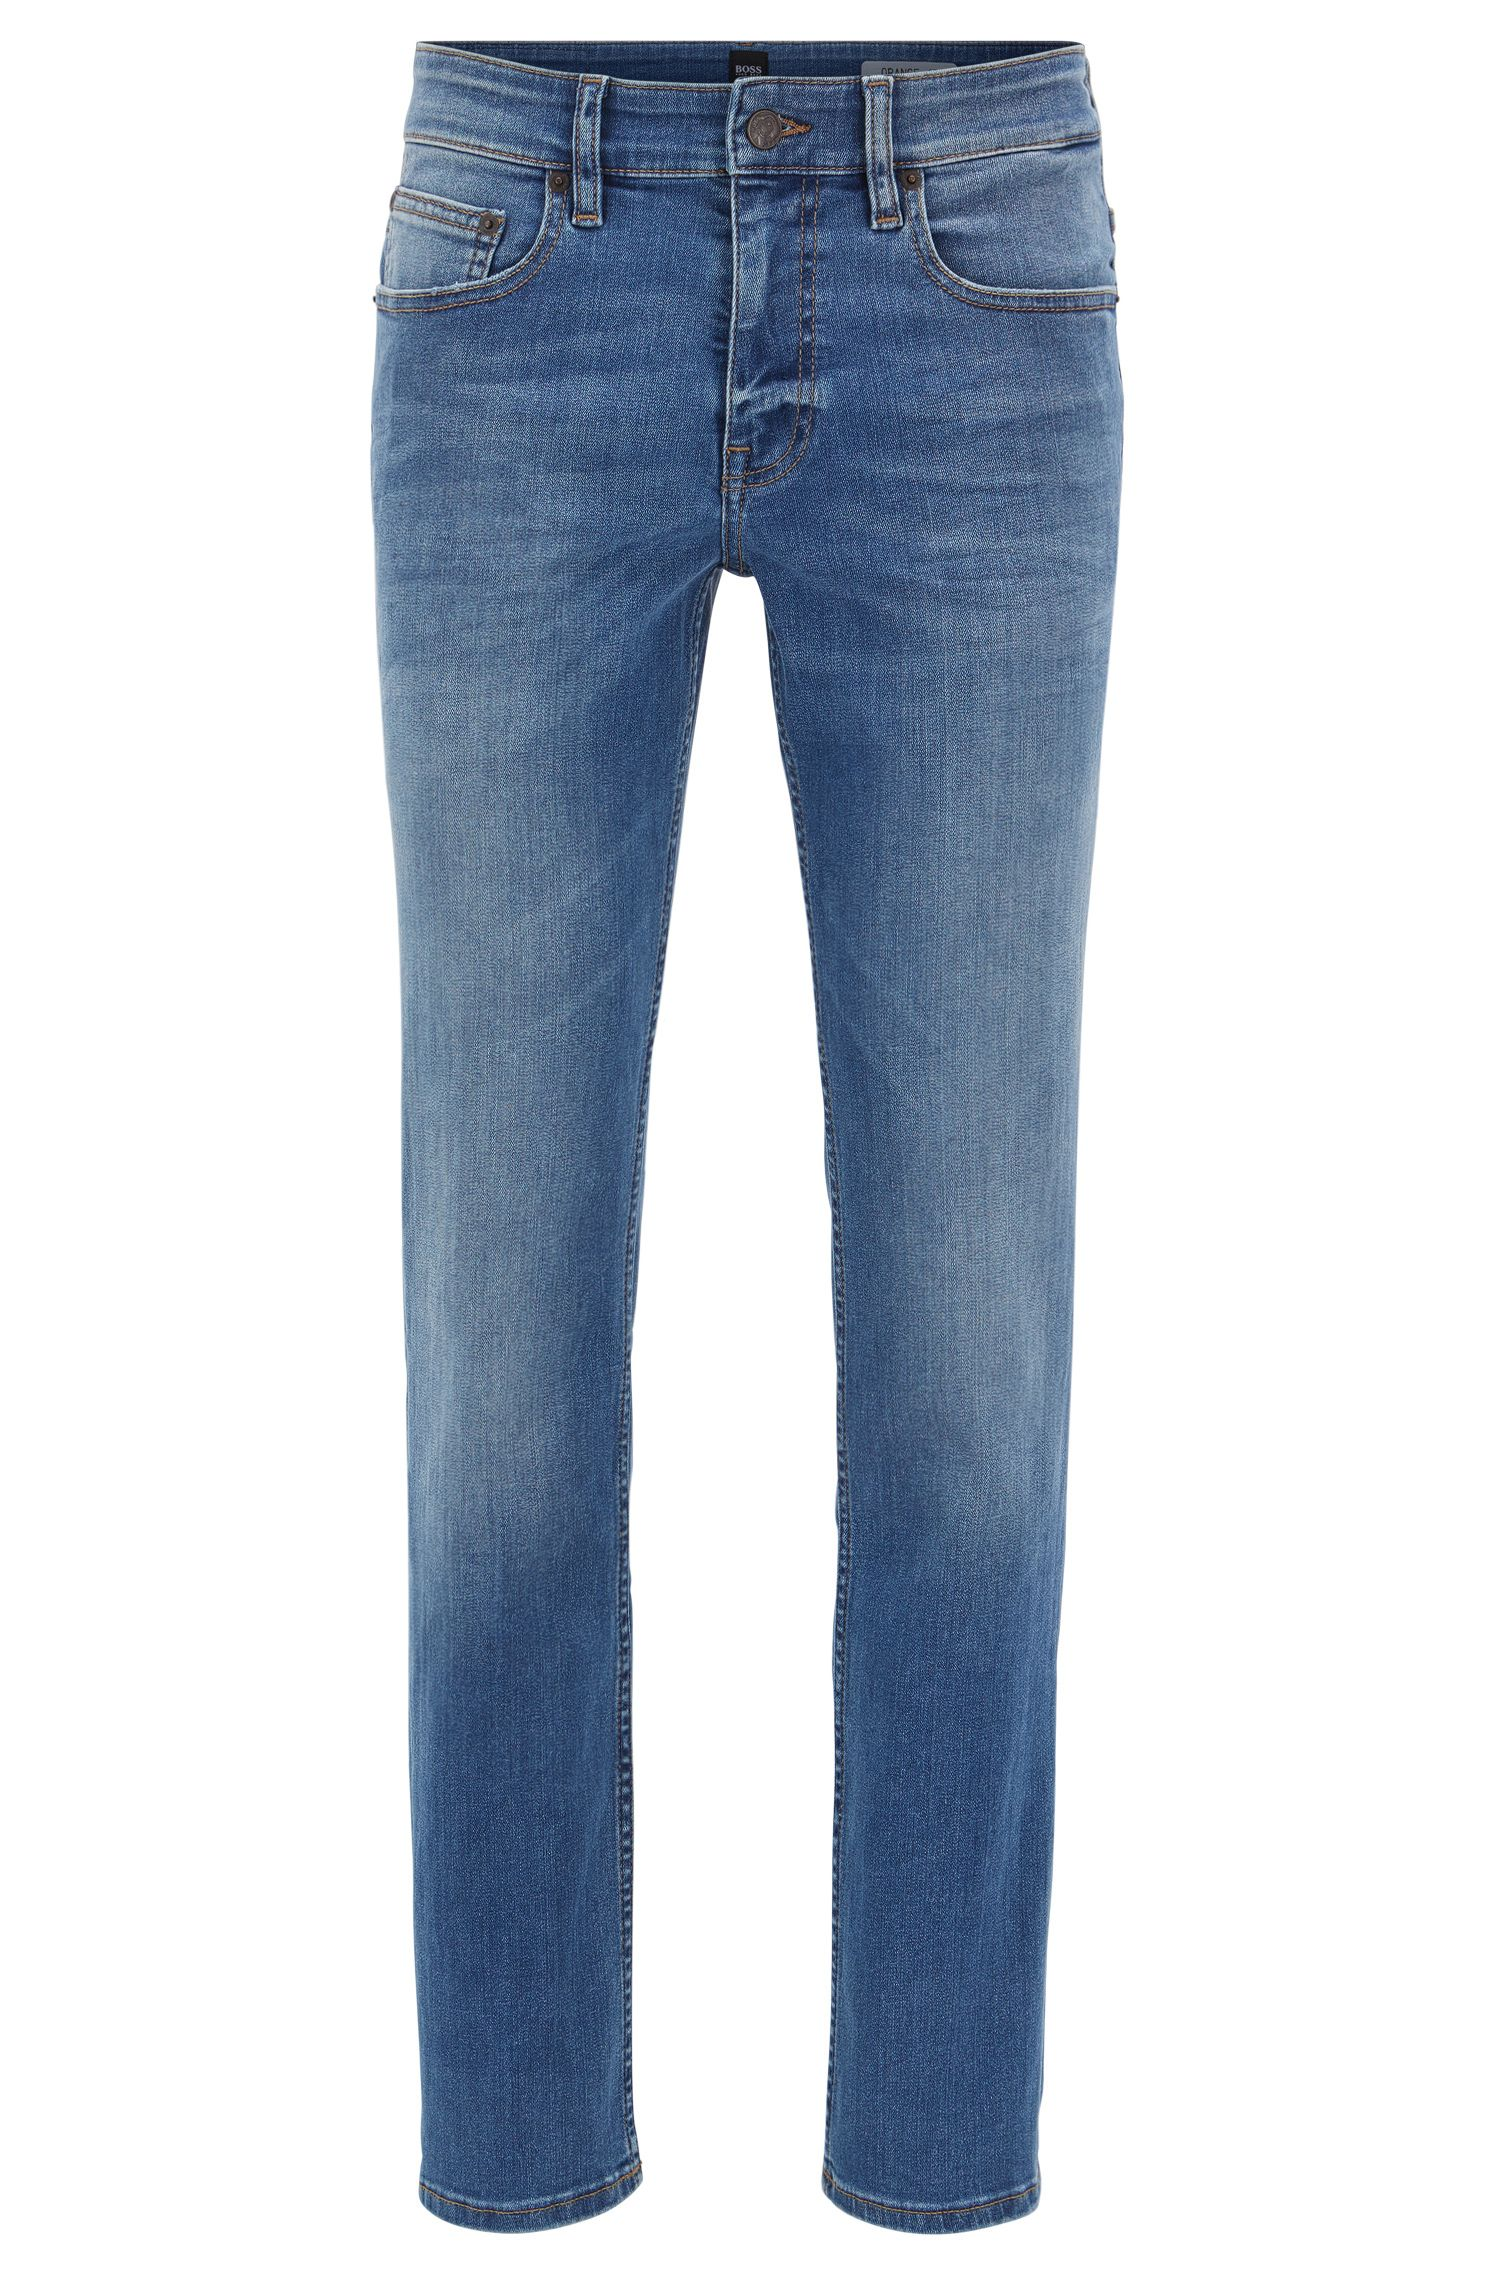 Jeans Slim Fit bleu moyen en denim super stretch